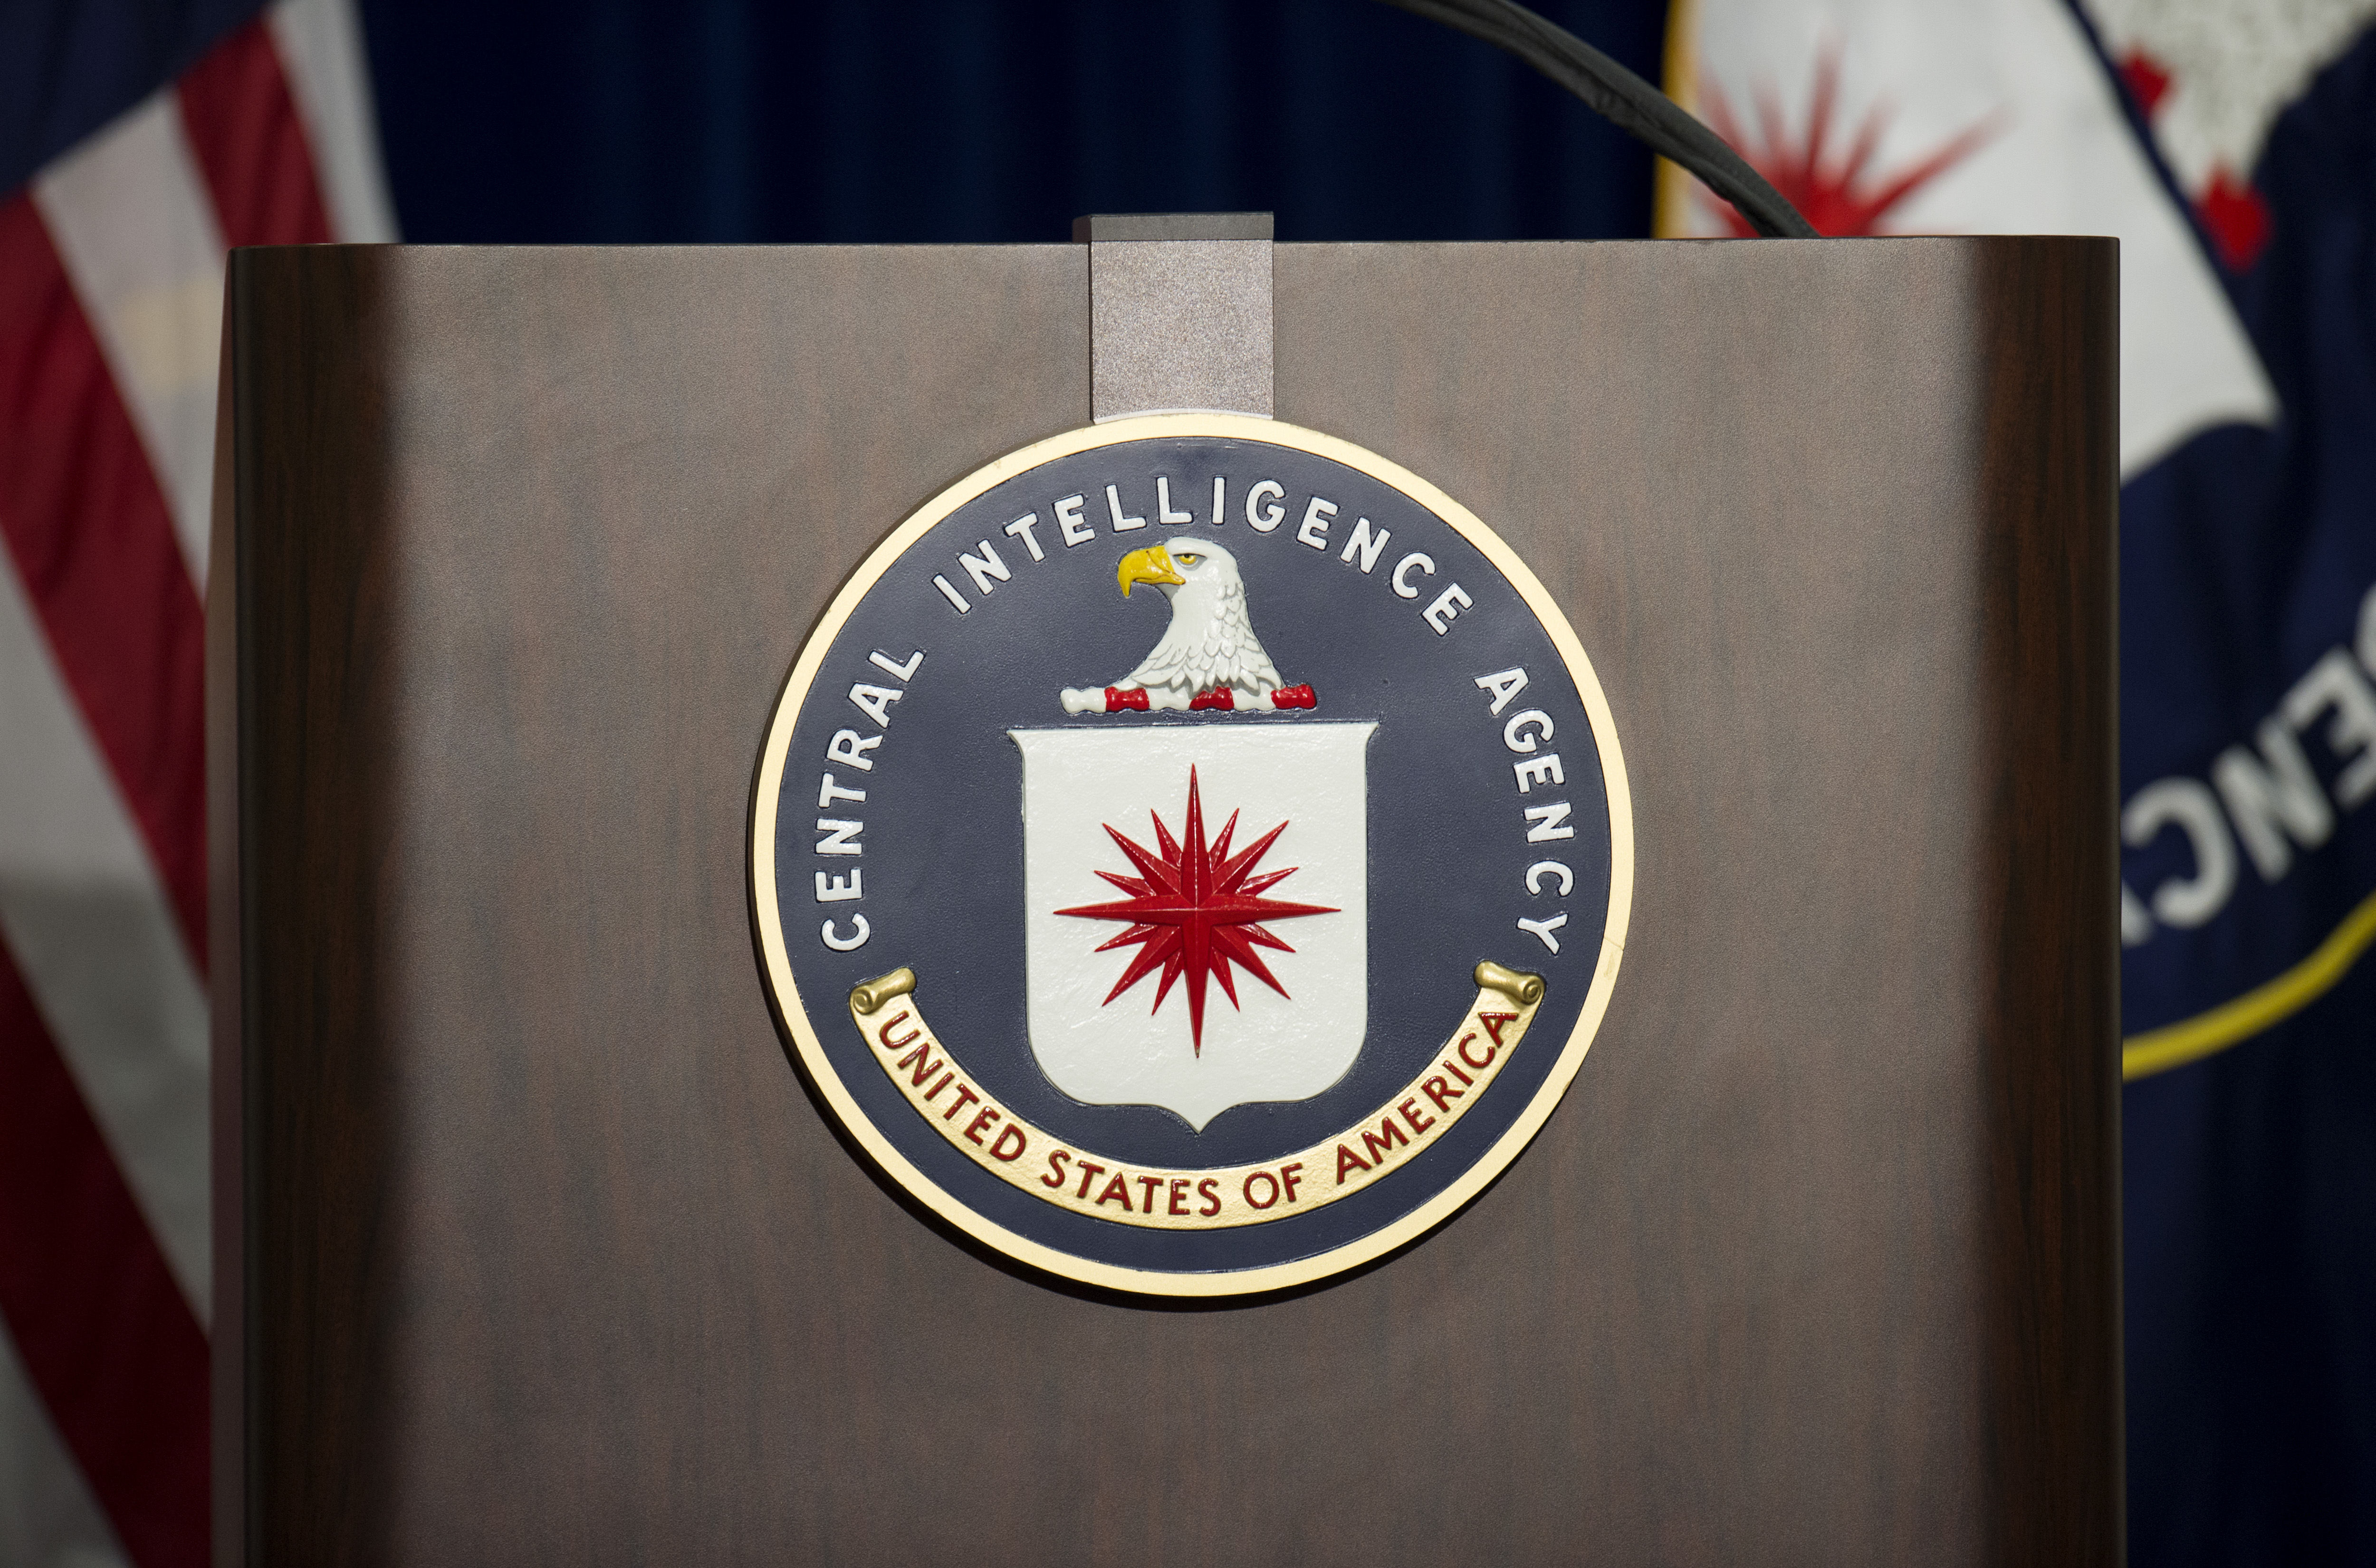 WikiLeaks Releases Vault 7 'Dark Matter' CIA Files, Claiming iPhones Were Bugged